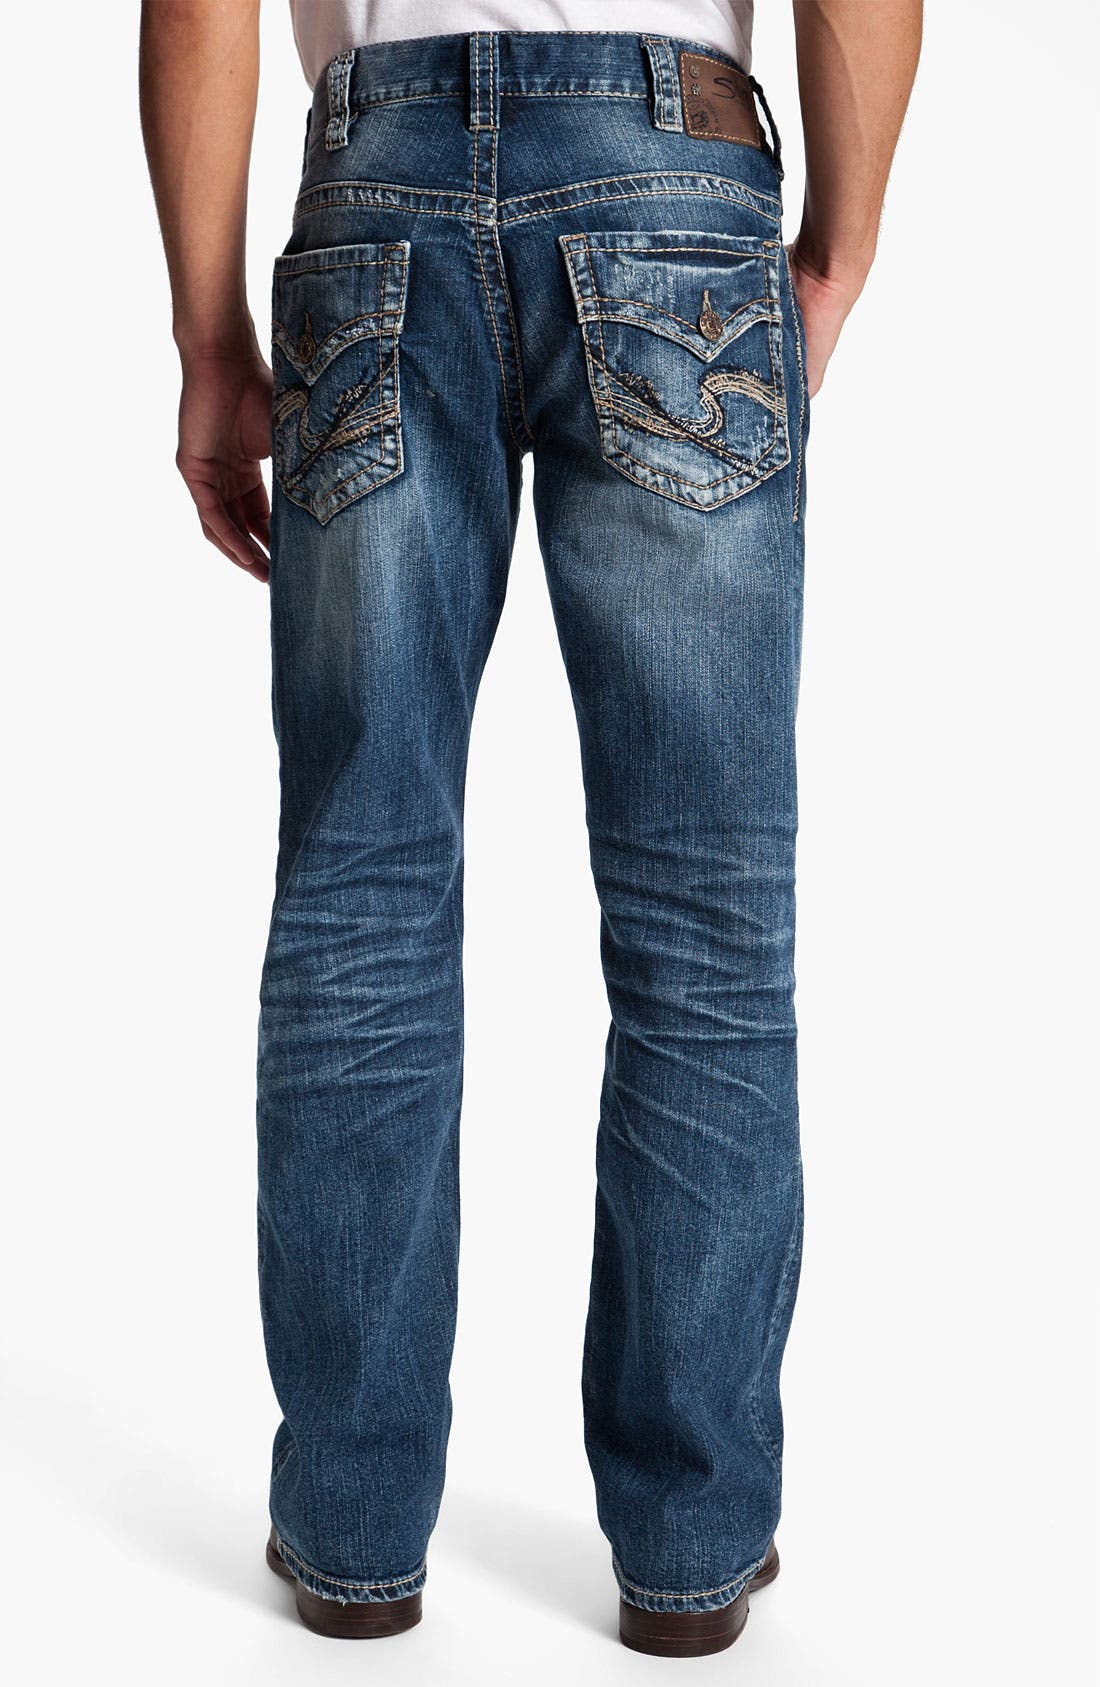 Alternate Image 1 Selected - Silver Jeans Co. 'Gordie' Relaxed Straight Leg Jeans